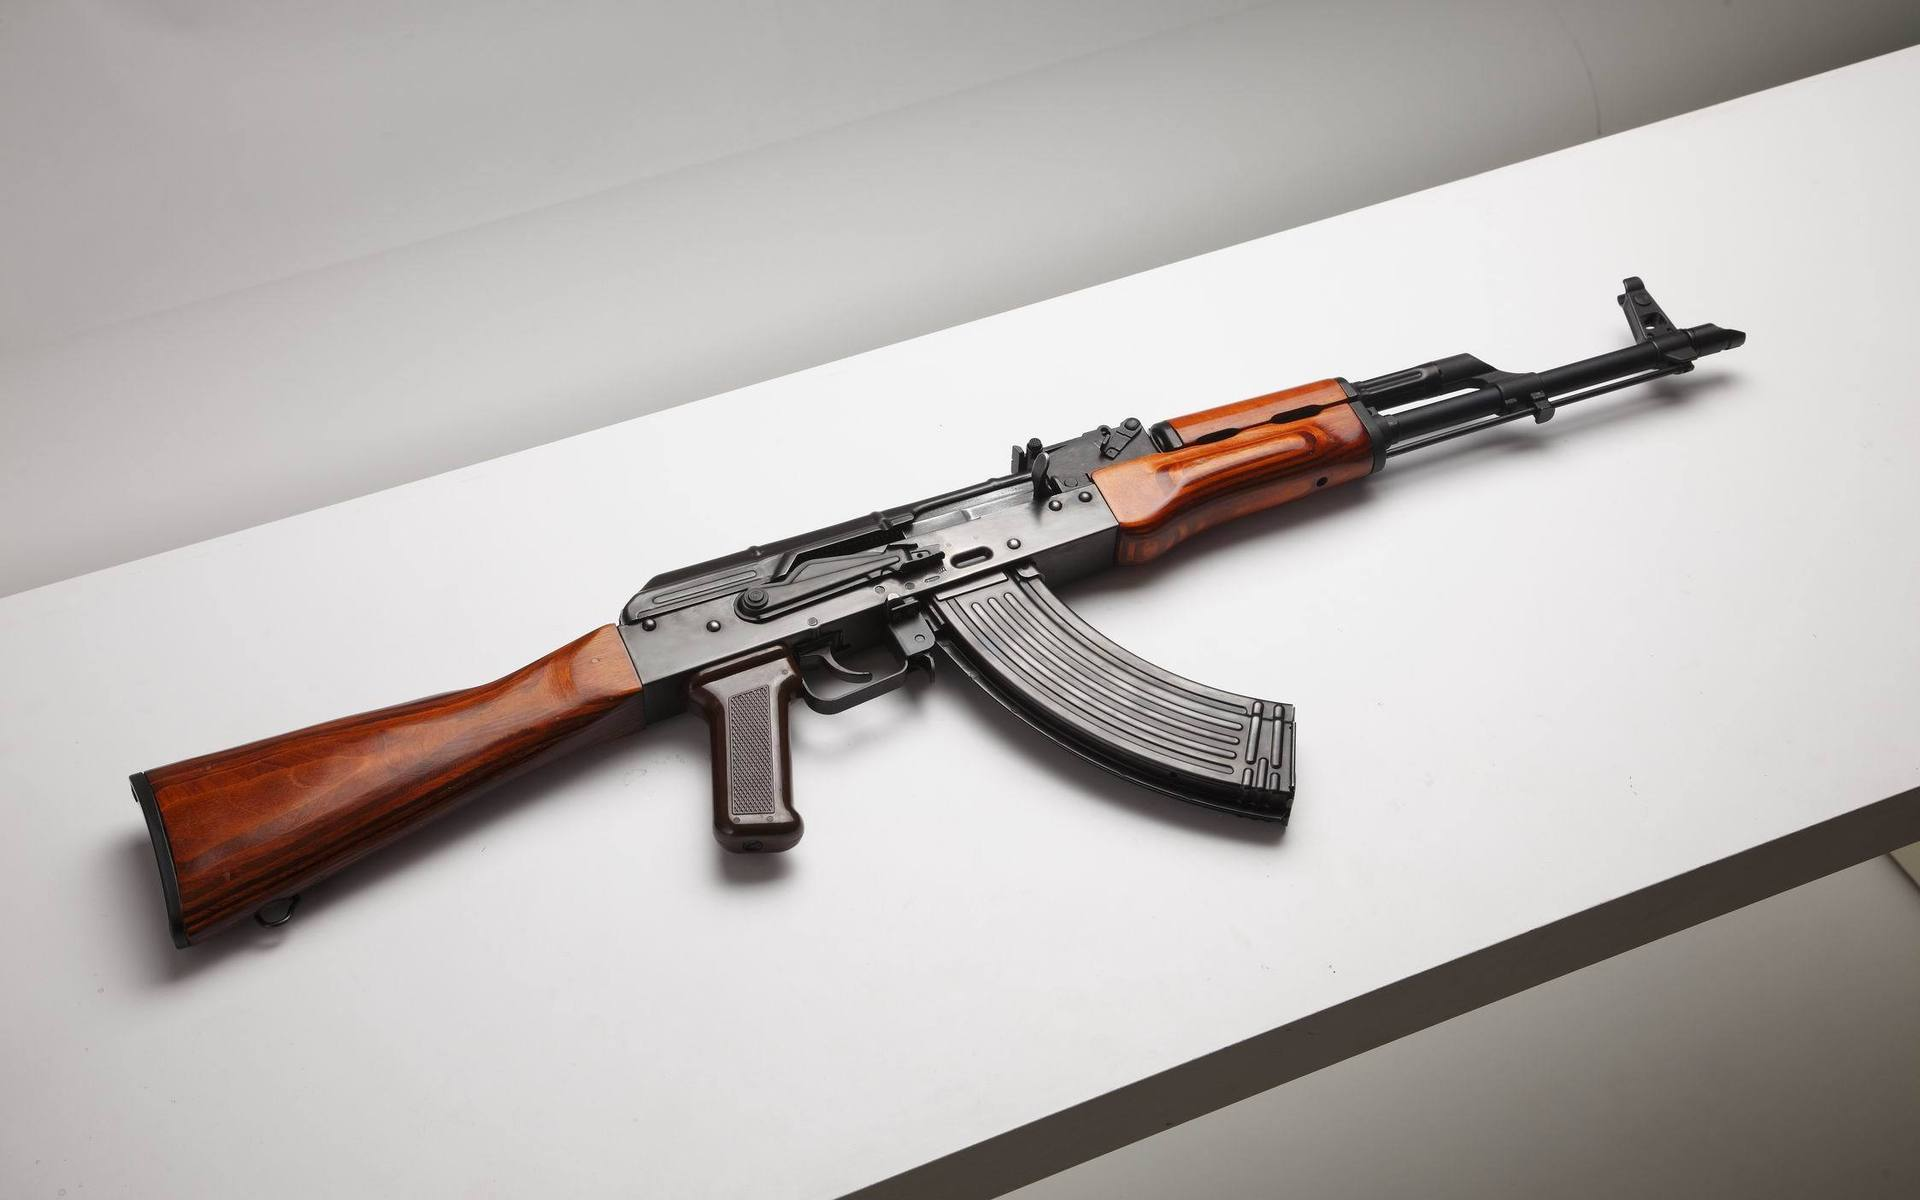 KALASHNIKOV AK 47 Weapon Gun Military Rifle Vc Wallpaper